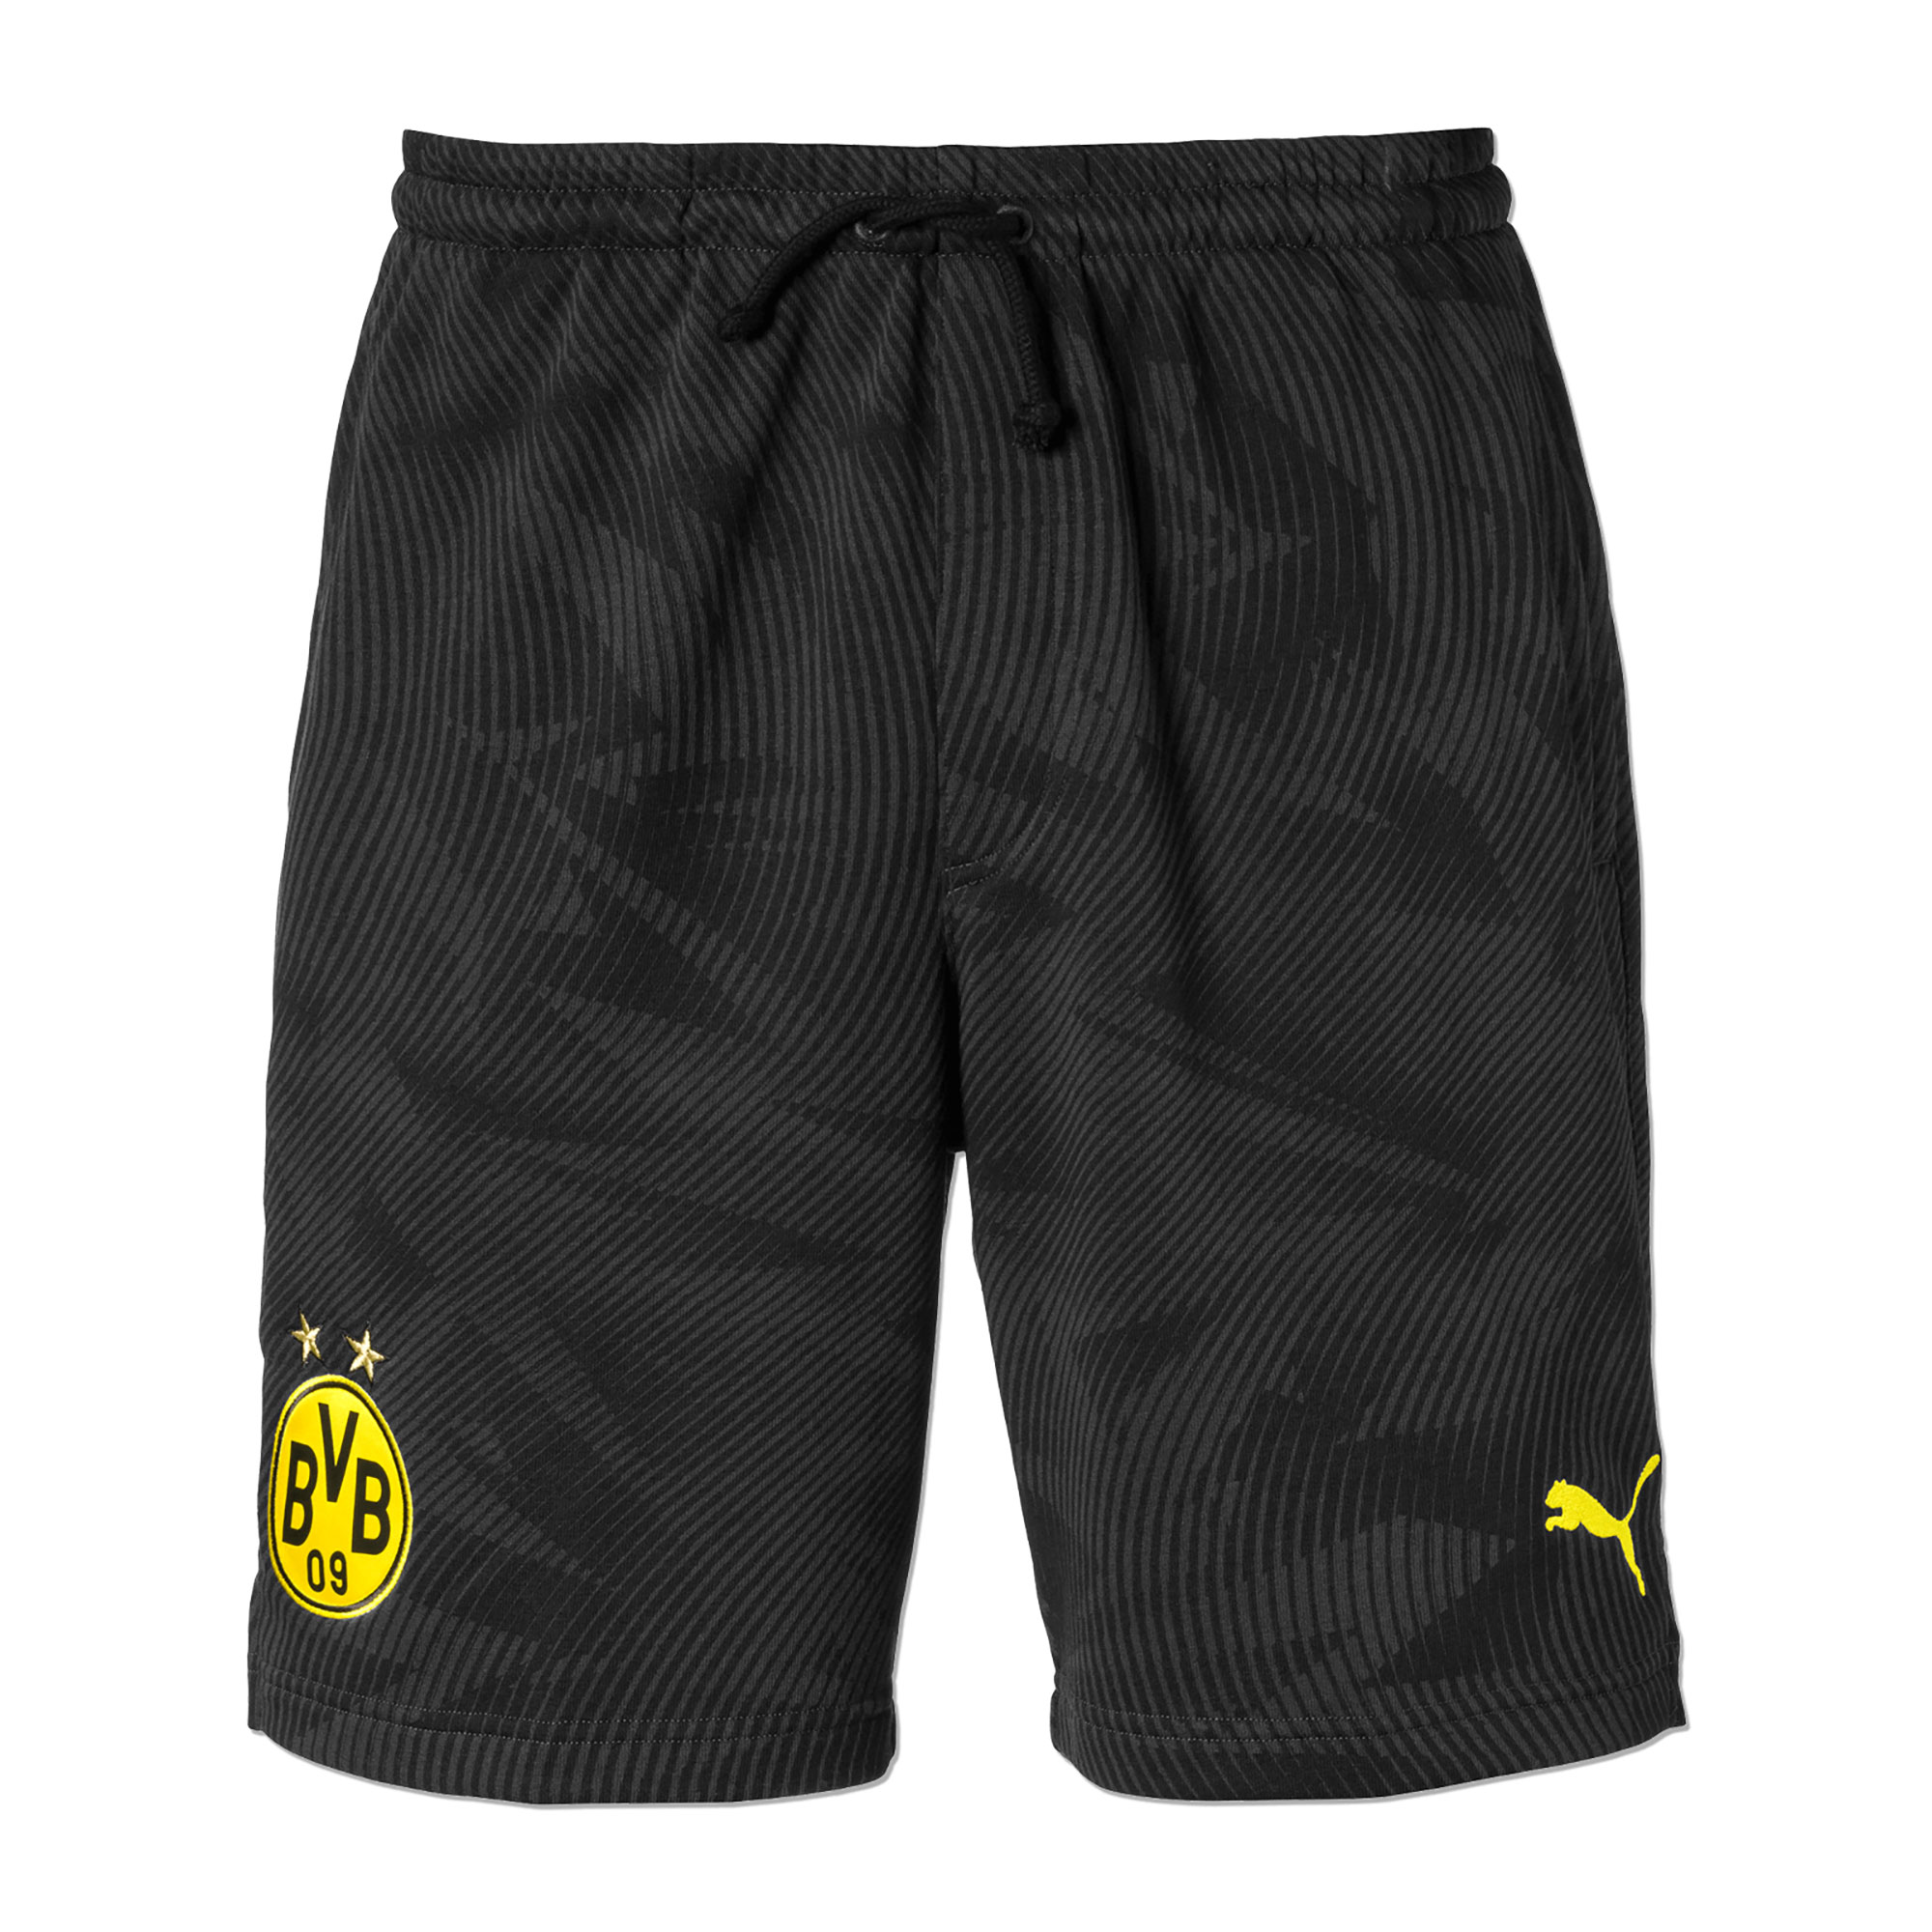 BVB Casuals Sweat Shorts - Black